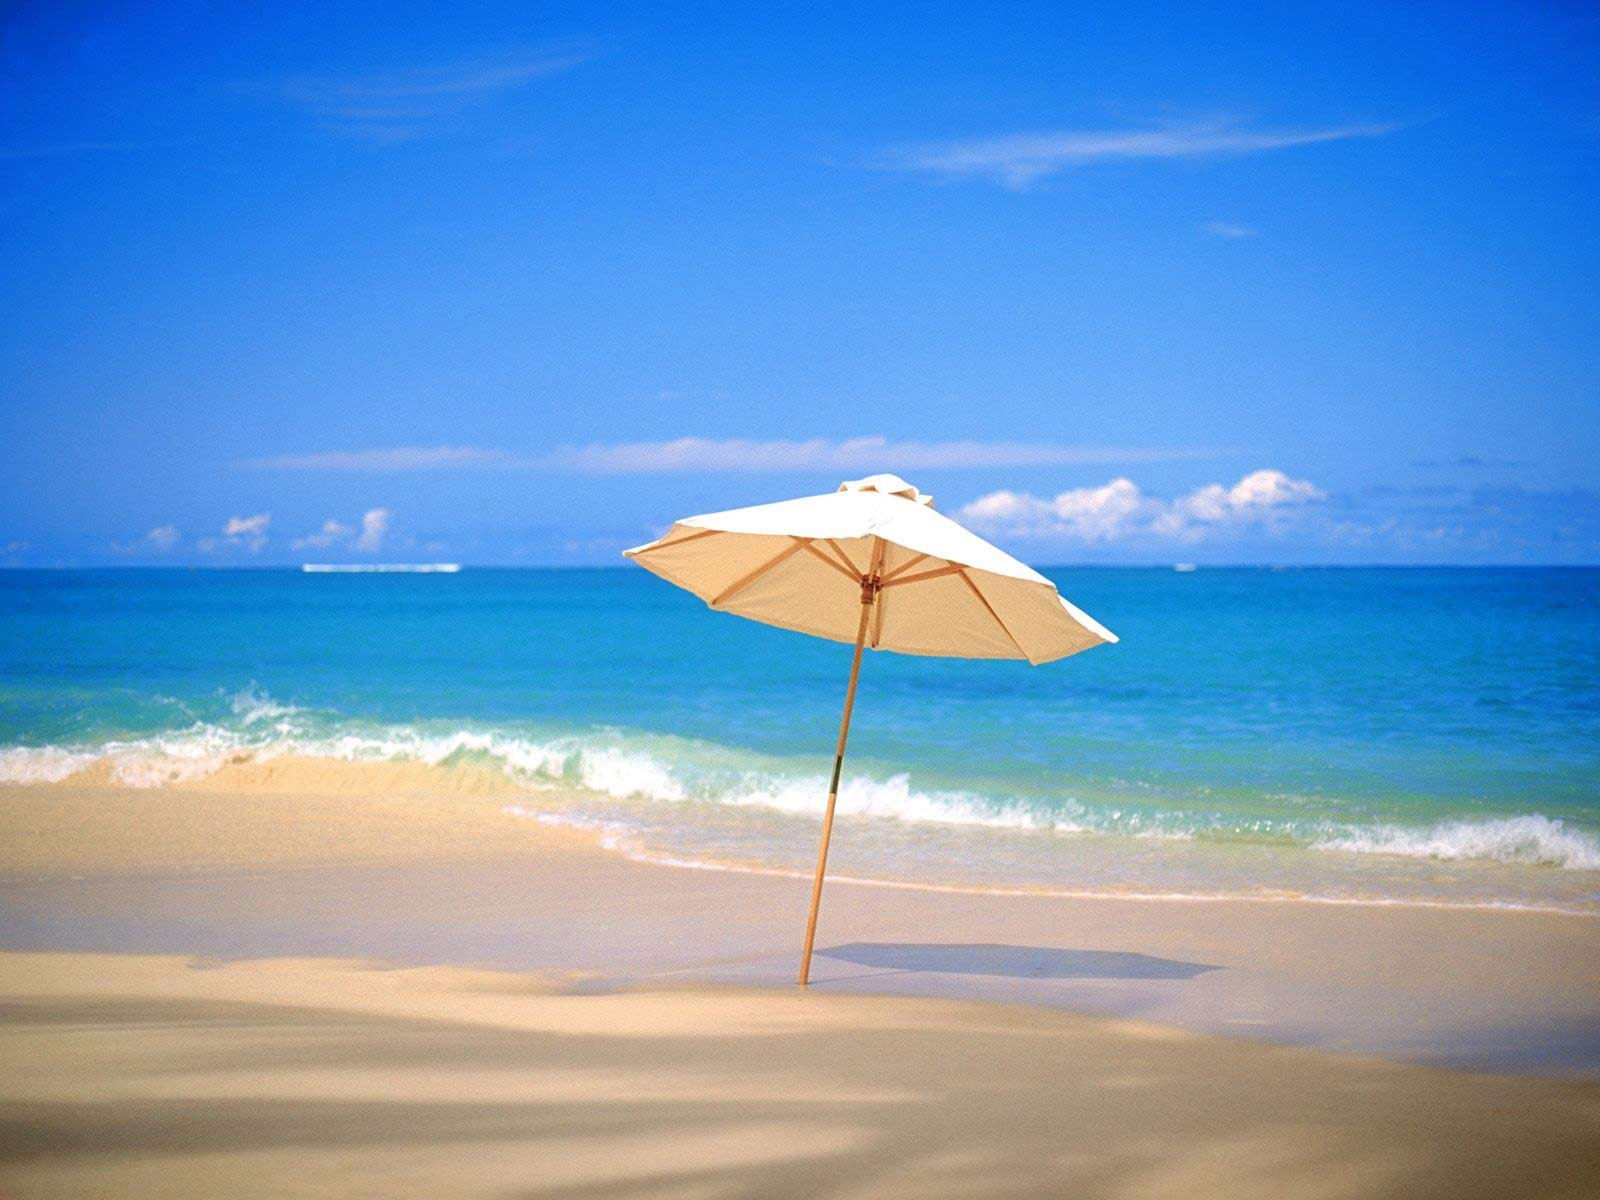 Download Coastal Holiday, Sand Be wallpaper | Unknown